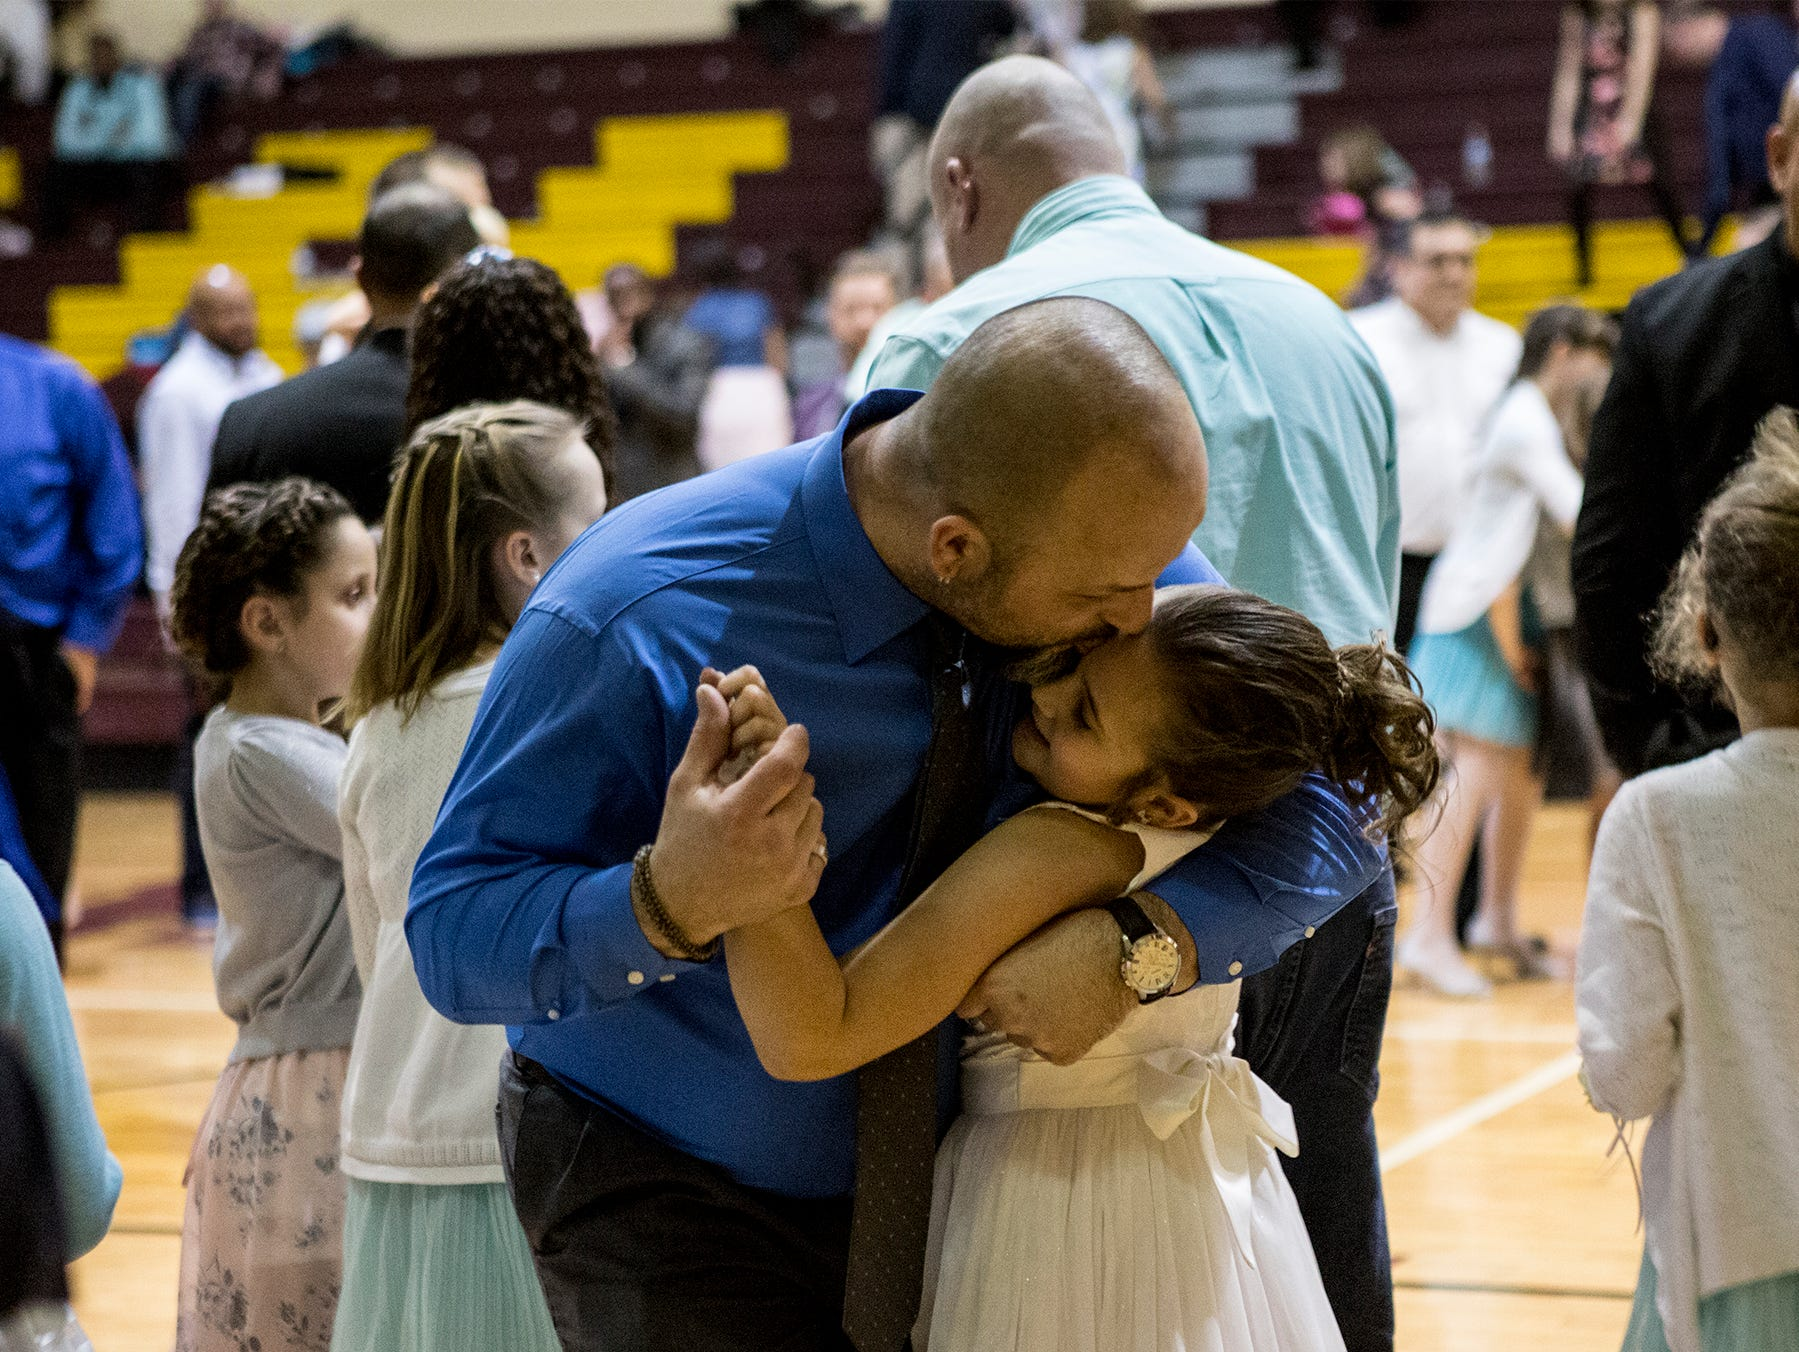 Tim Williams leans over and kisses his daughter, Hanna, 7, during the Daddy/Daughter dance Saturday. The dance was hosted by the Licking County Family YMCA Western Branch. The event, which is a fundraiser for the YMCA, brought in more than 800 people.